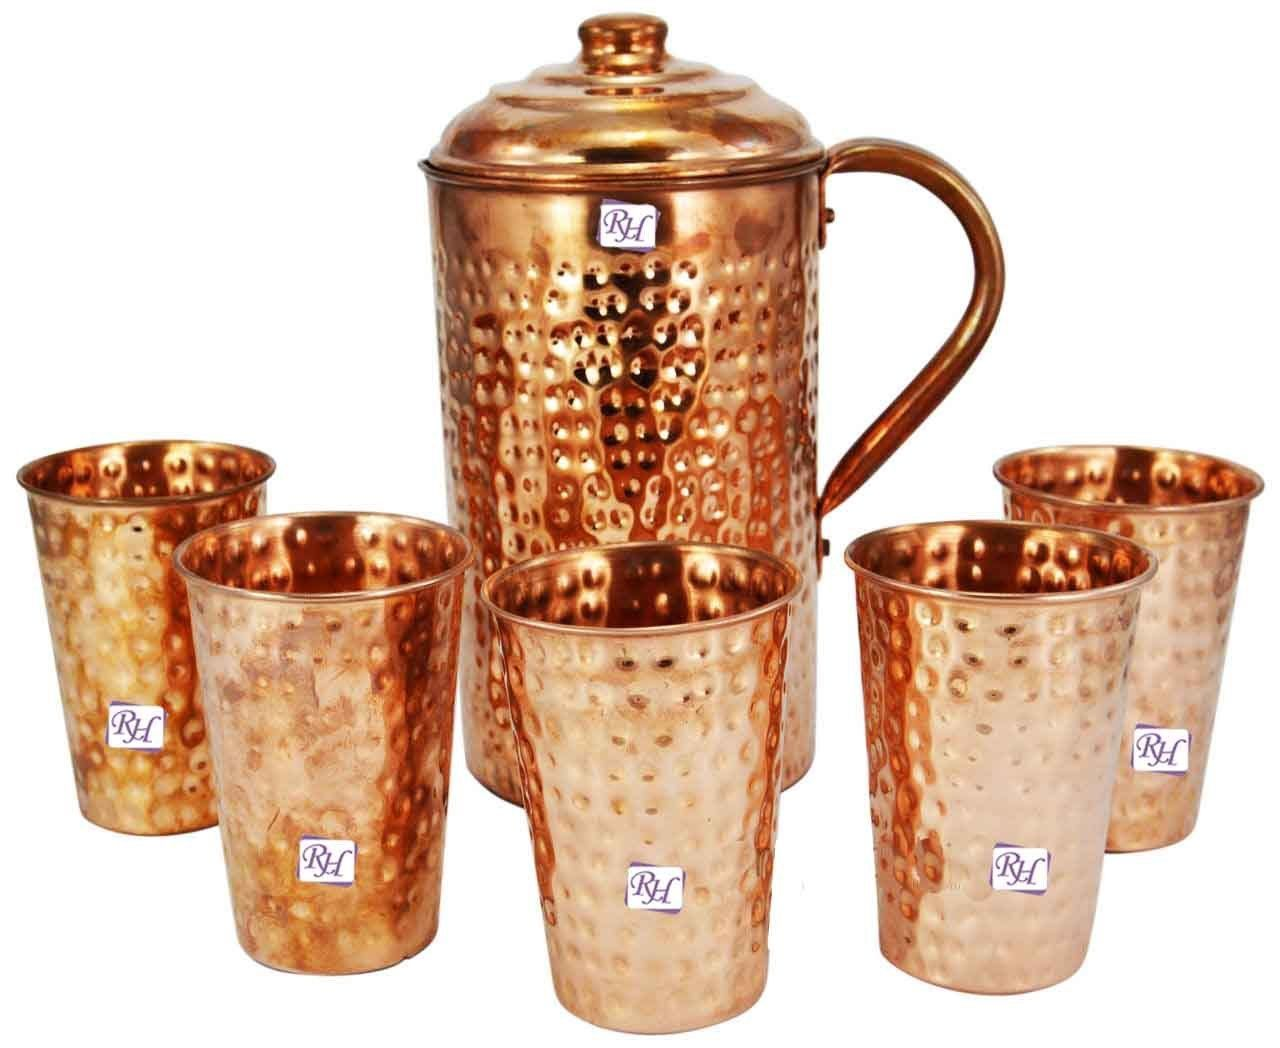 copper Water Pitcher Jug & 5pcs copper glass from Indian Ayurveda